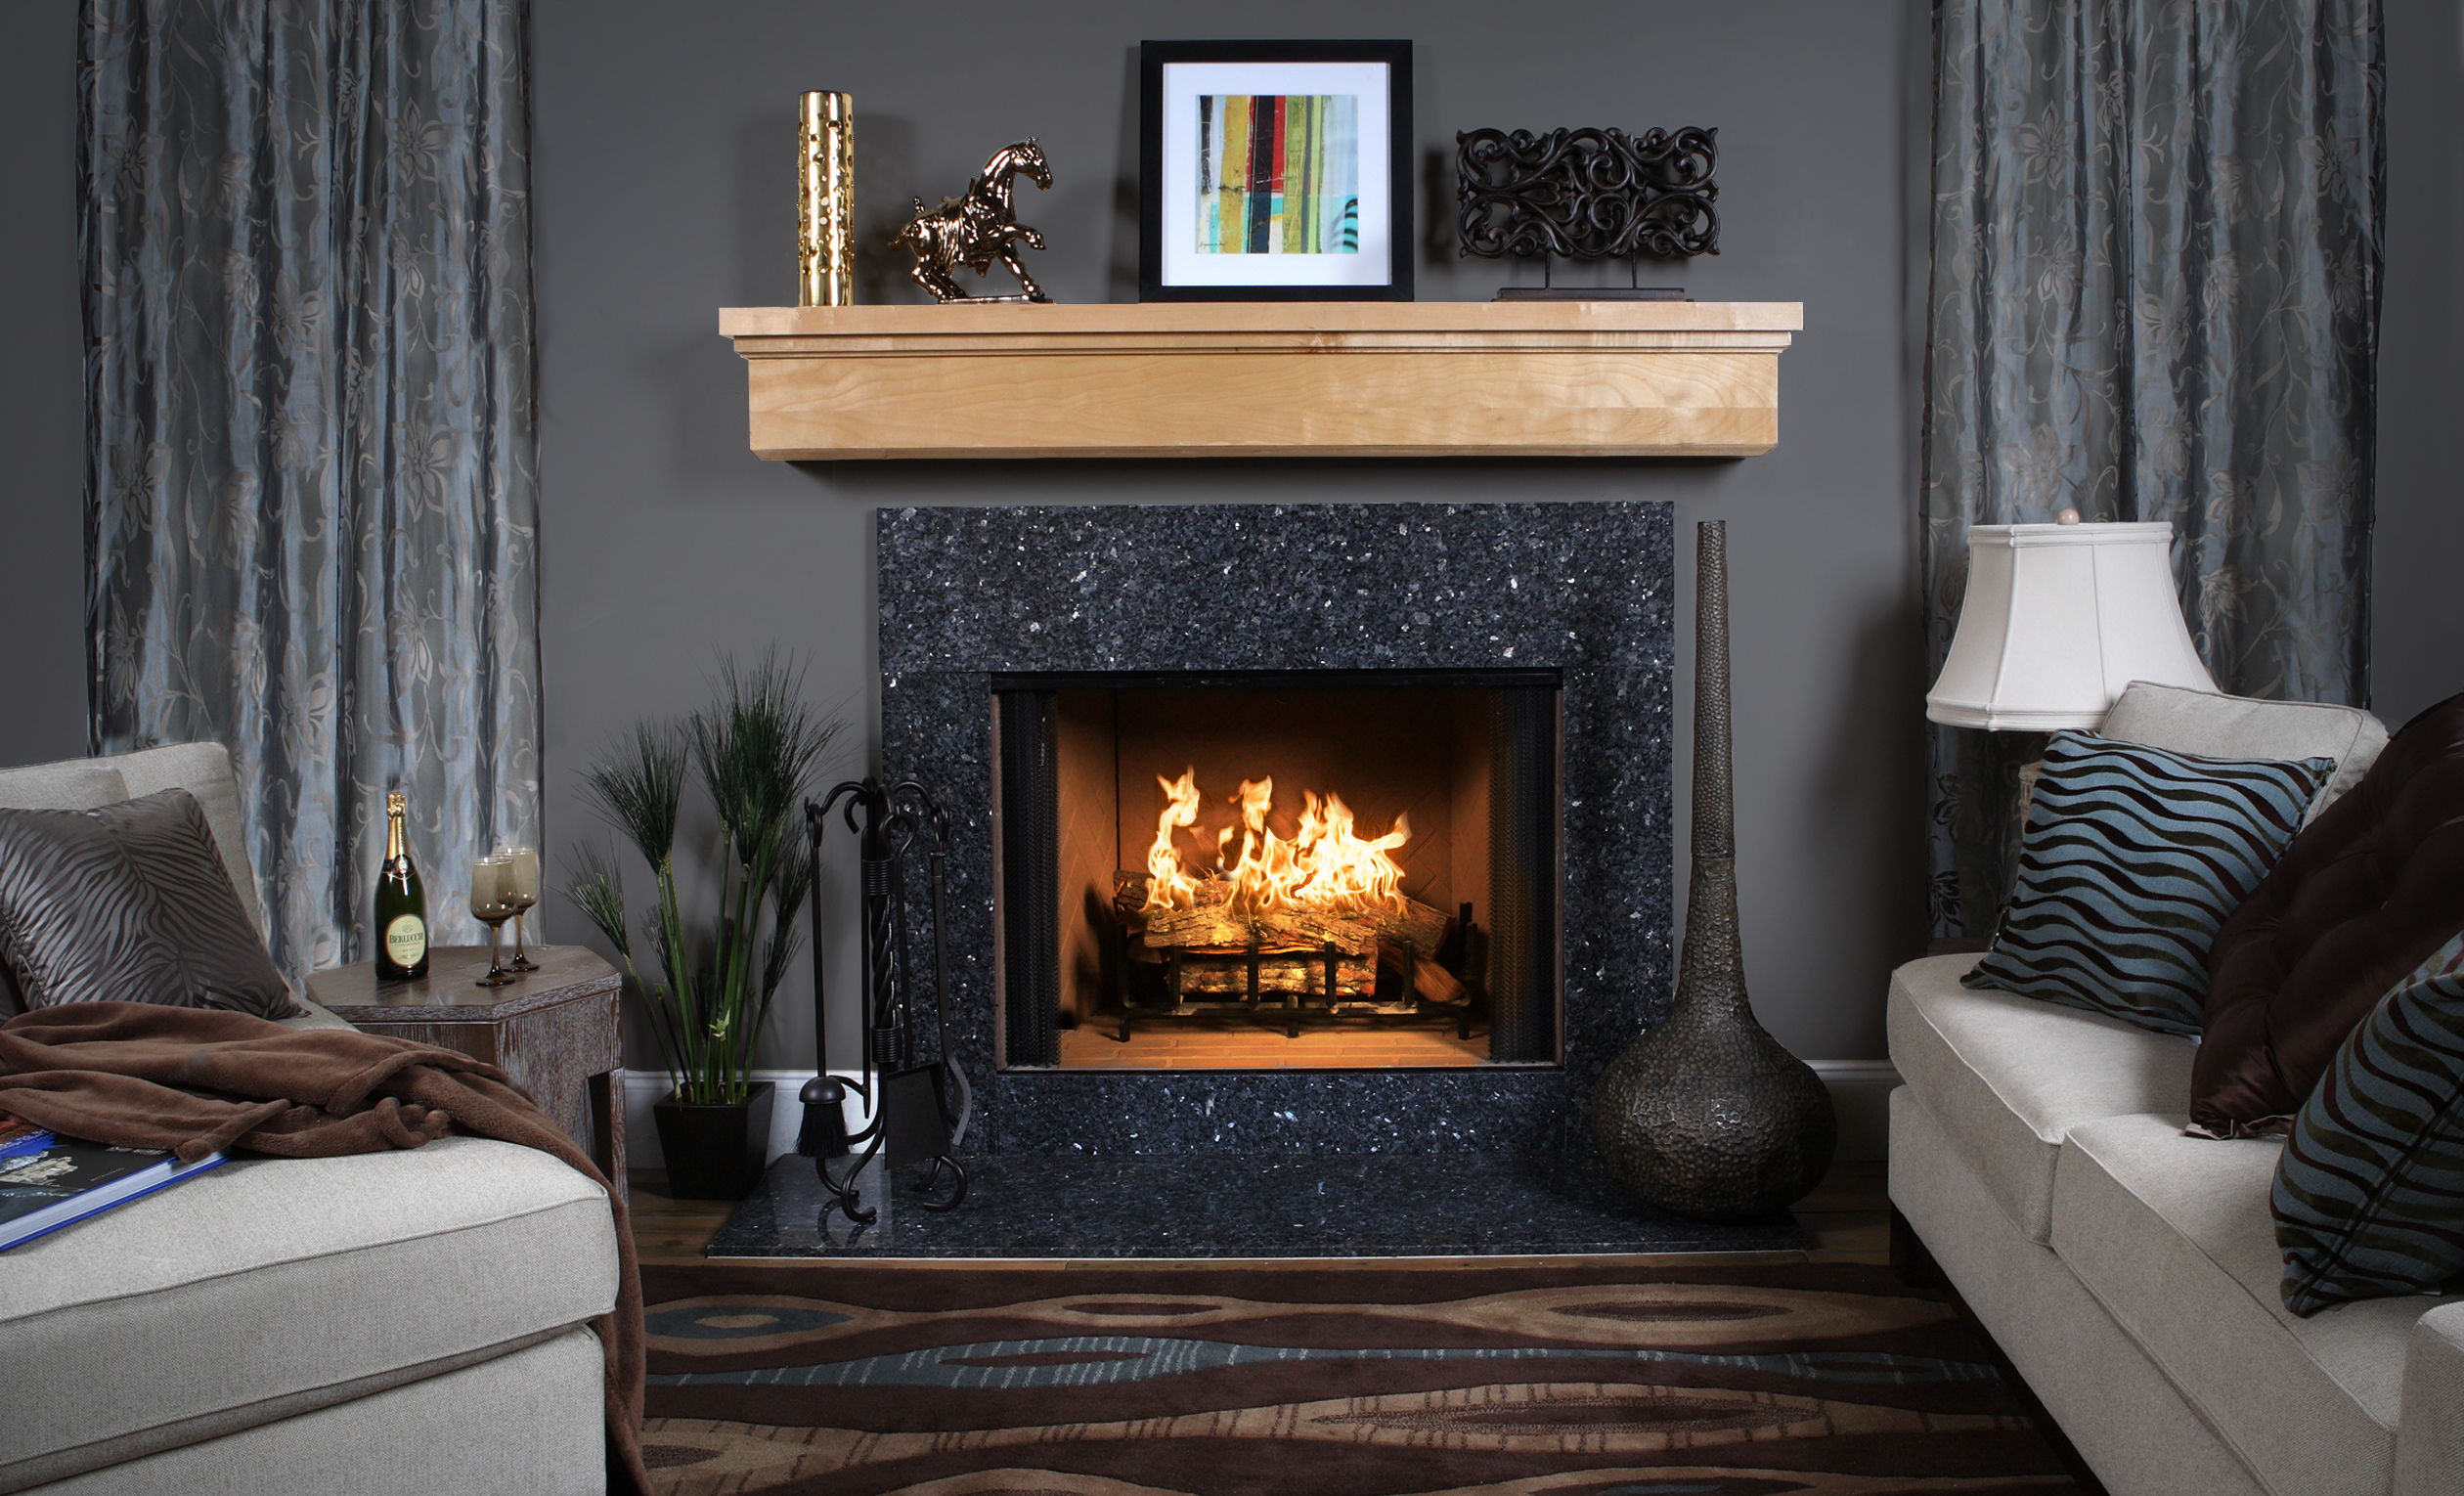 Discount Fireplace Mantels | Lowes Fireplace Mantel | Mantel Kits Home Depot